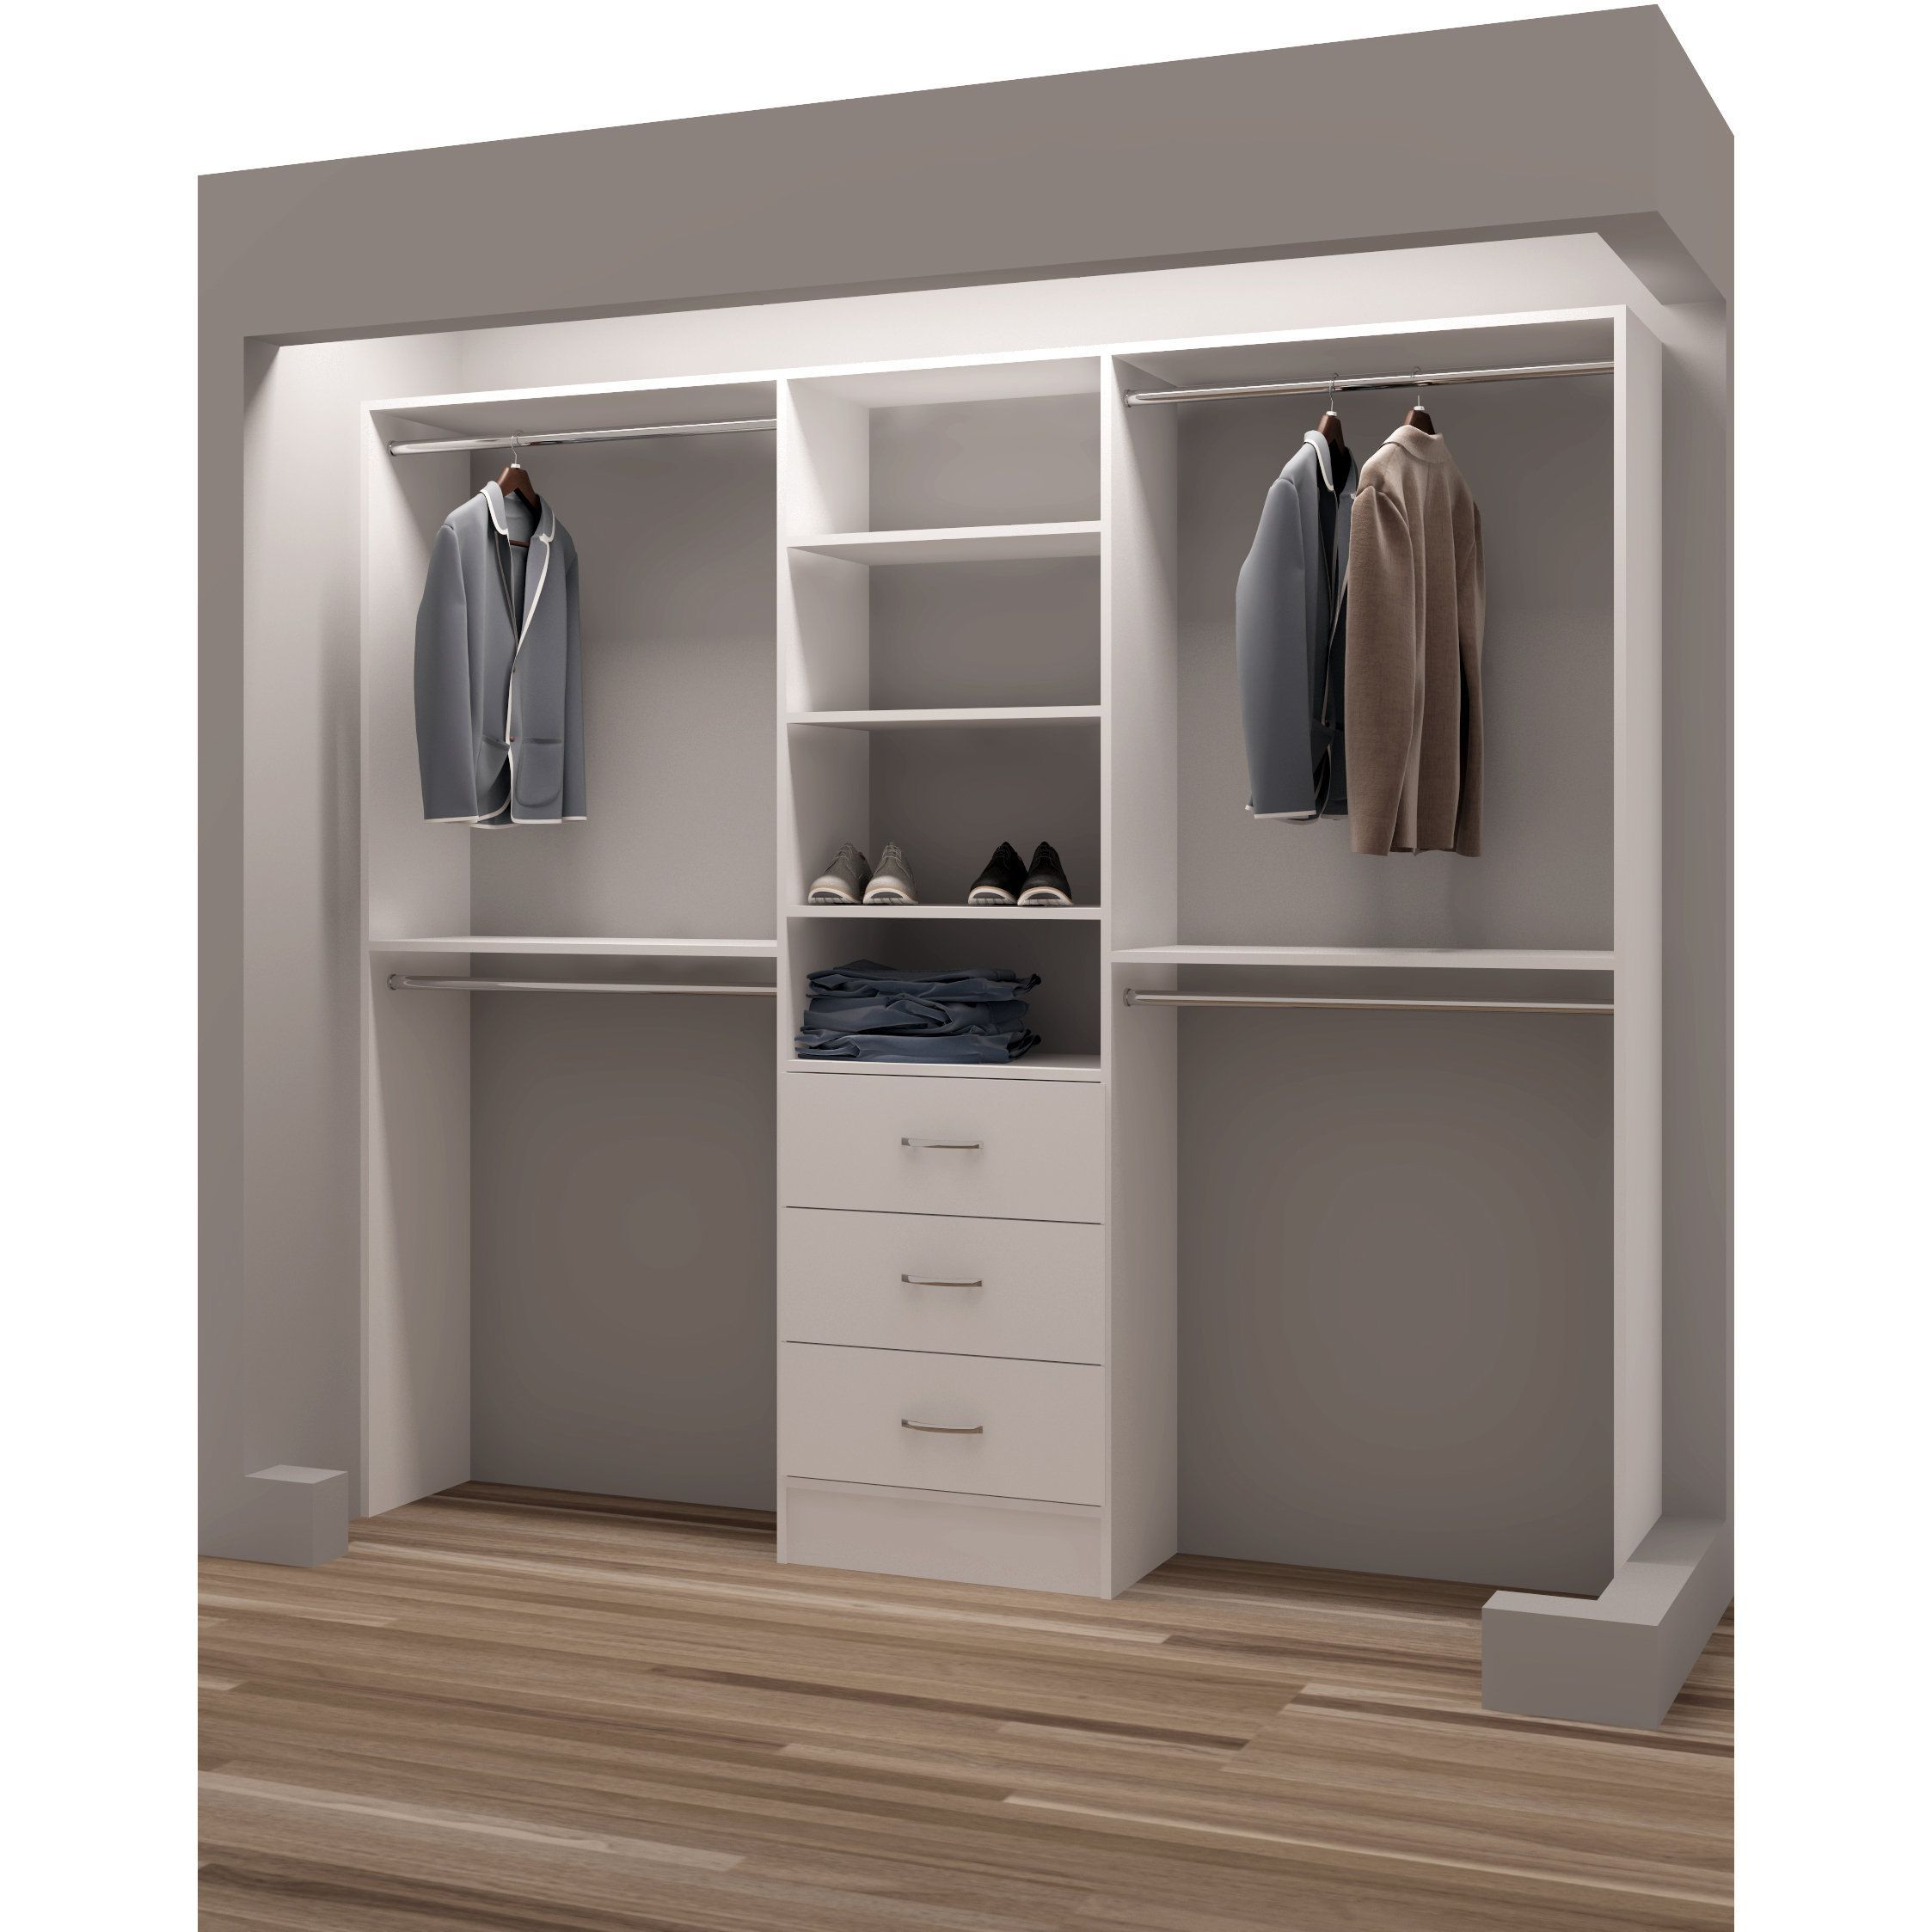 TidySquares Classic White Wood 87-inch Reach-in Closet Organizer ...